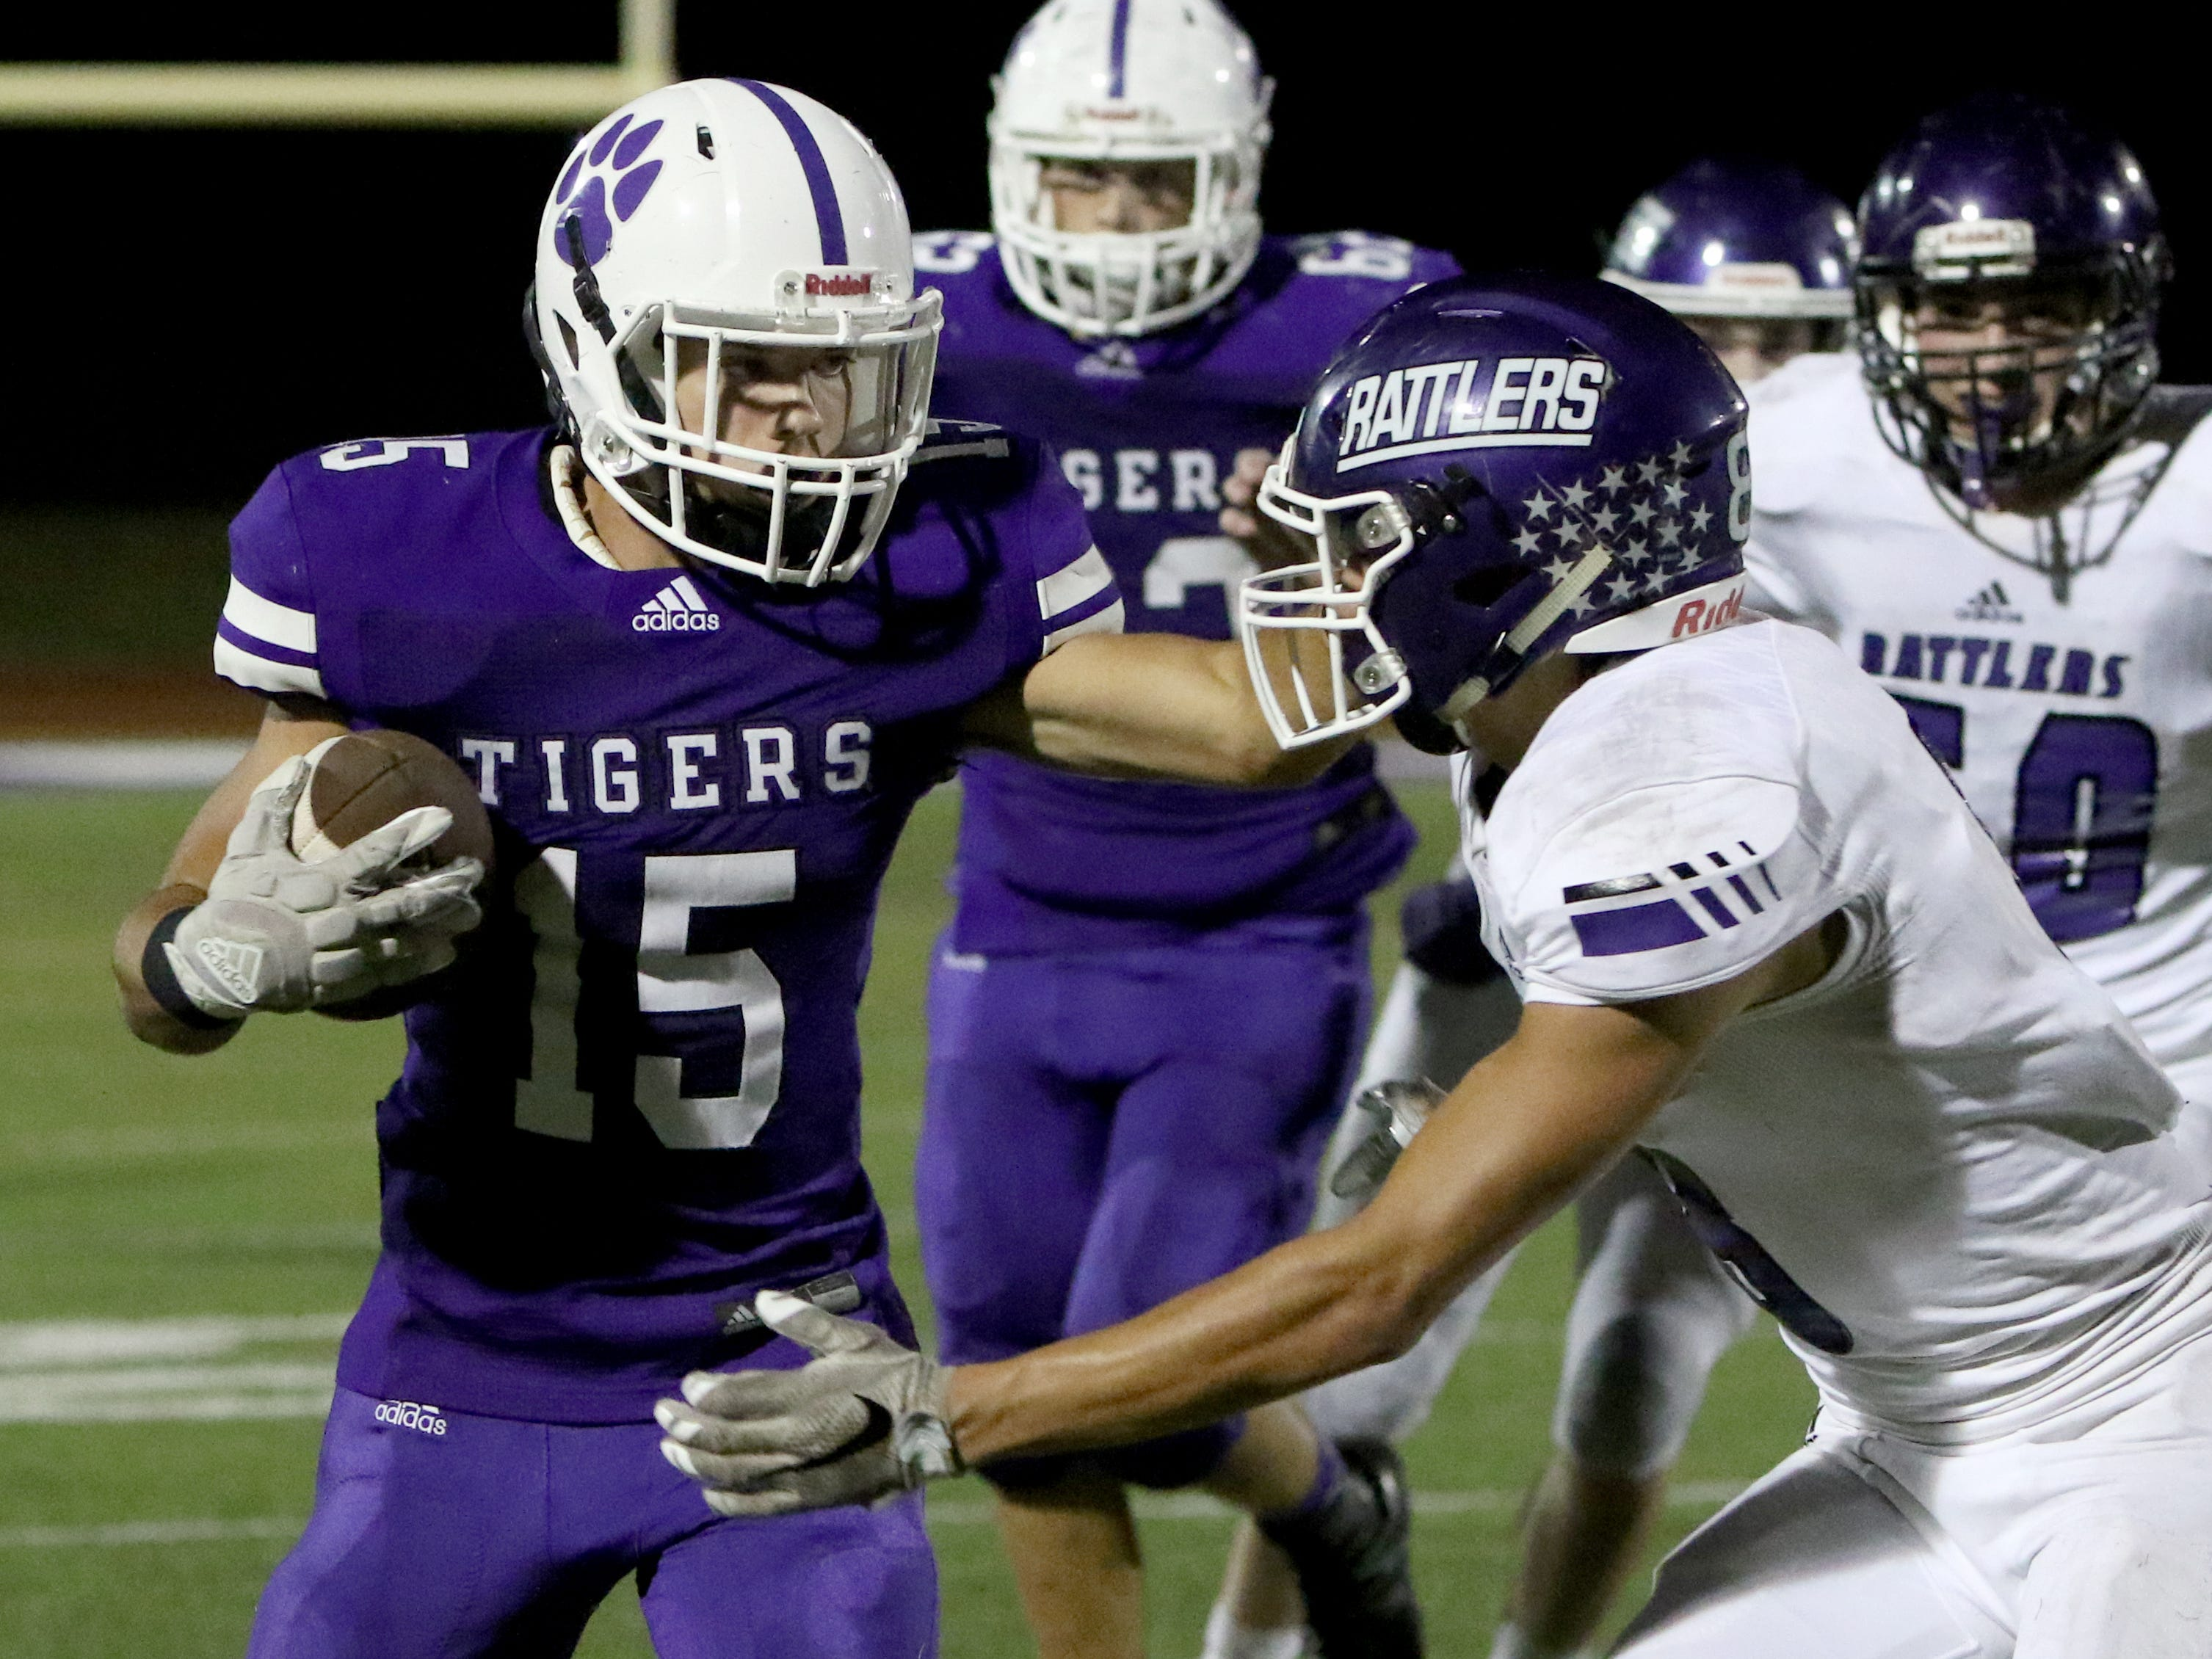 Jacksboro's Ethan Fudge is pushed out of bounds by Tolar's Mason Behrens Friday, Oct. 19, 2018, in Jacksboro. The Tigers defeated the Rattlers 42-21.